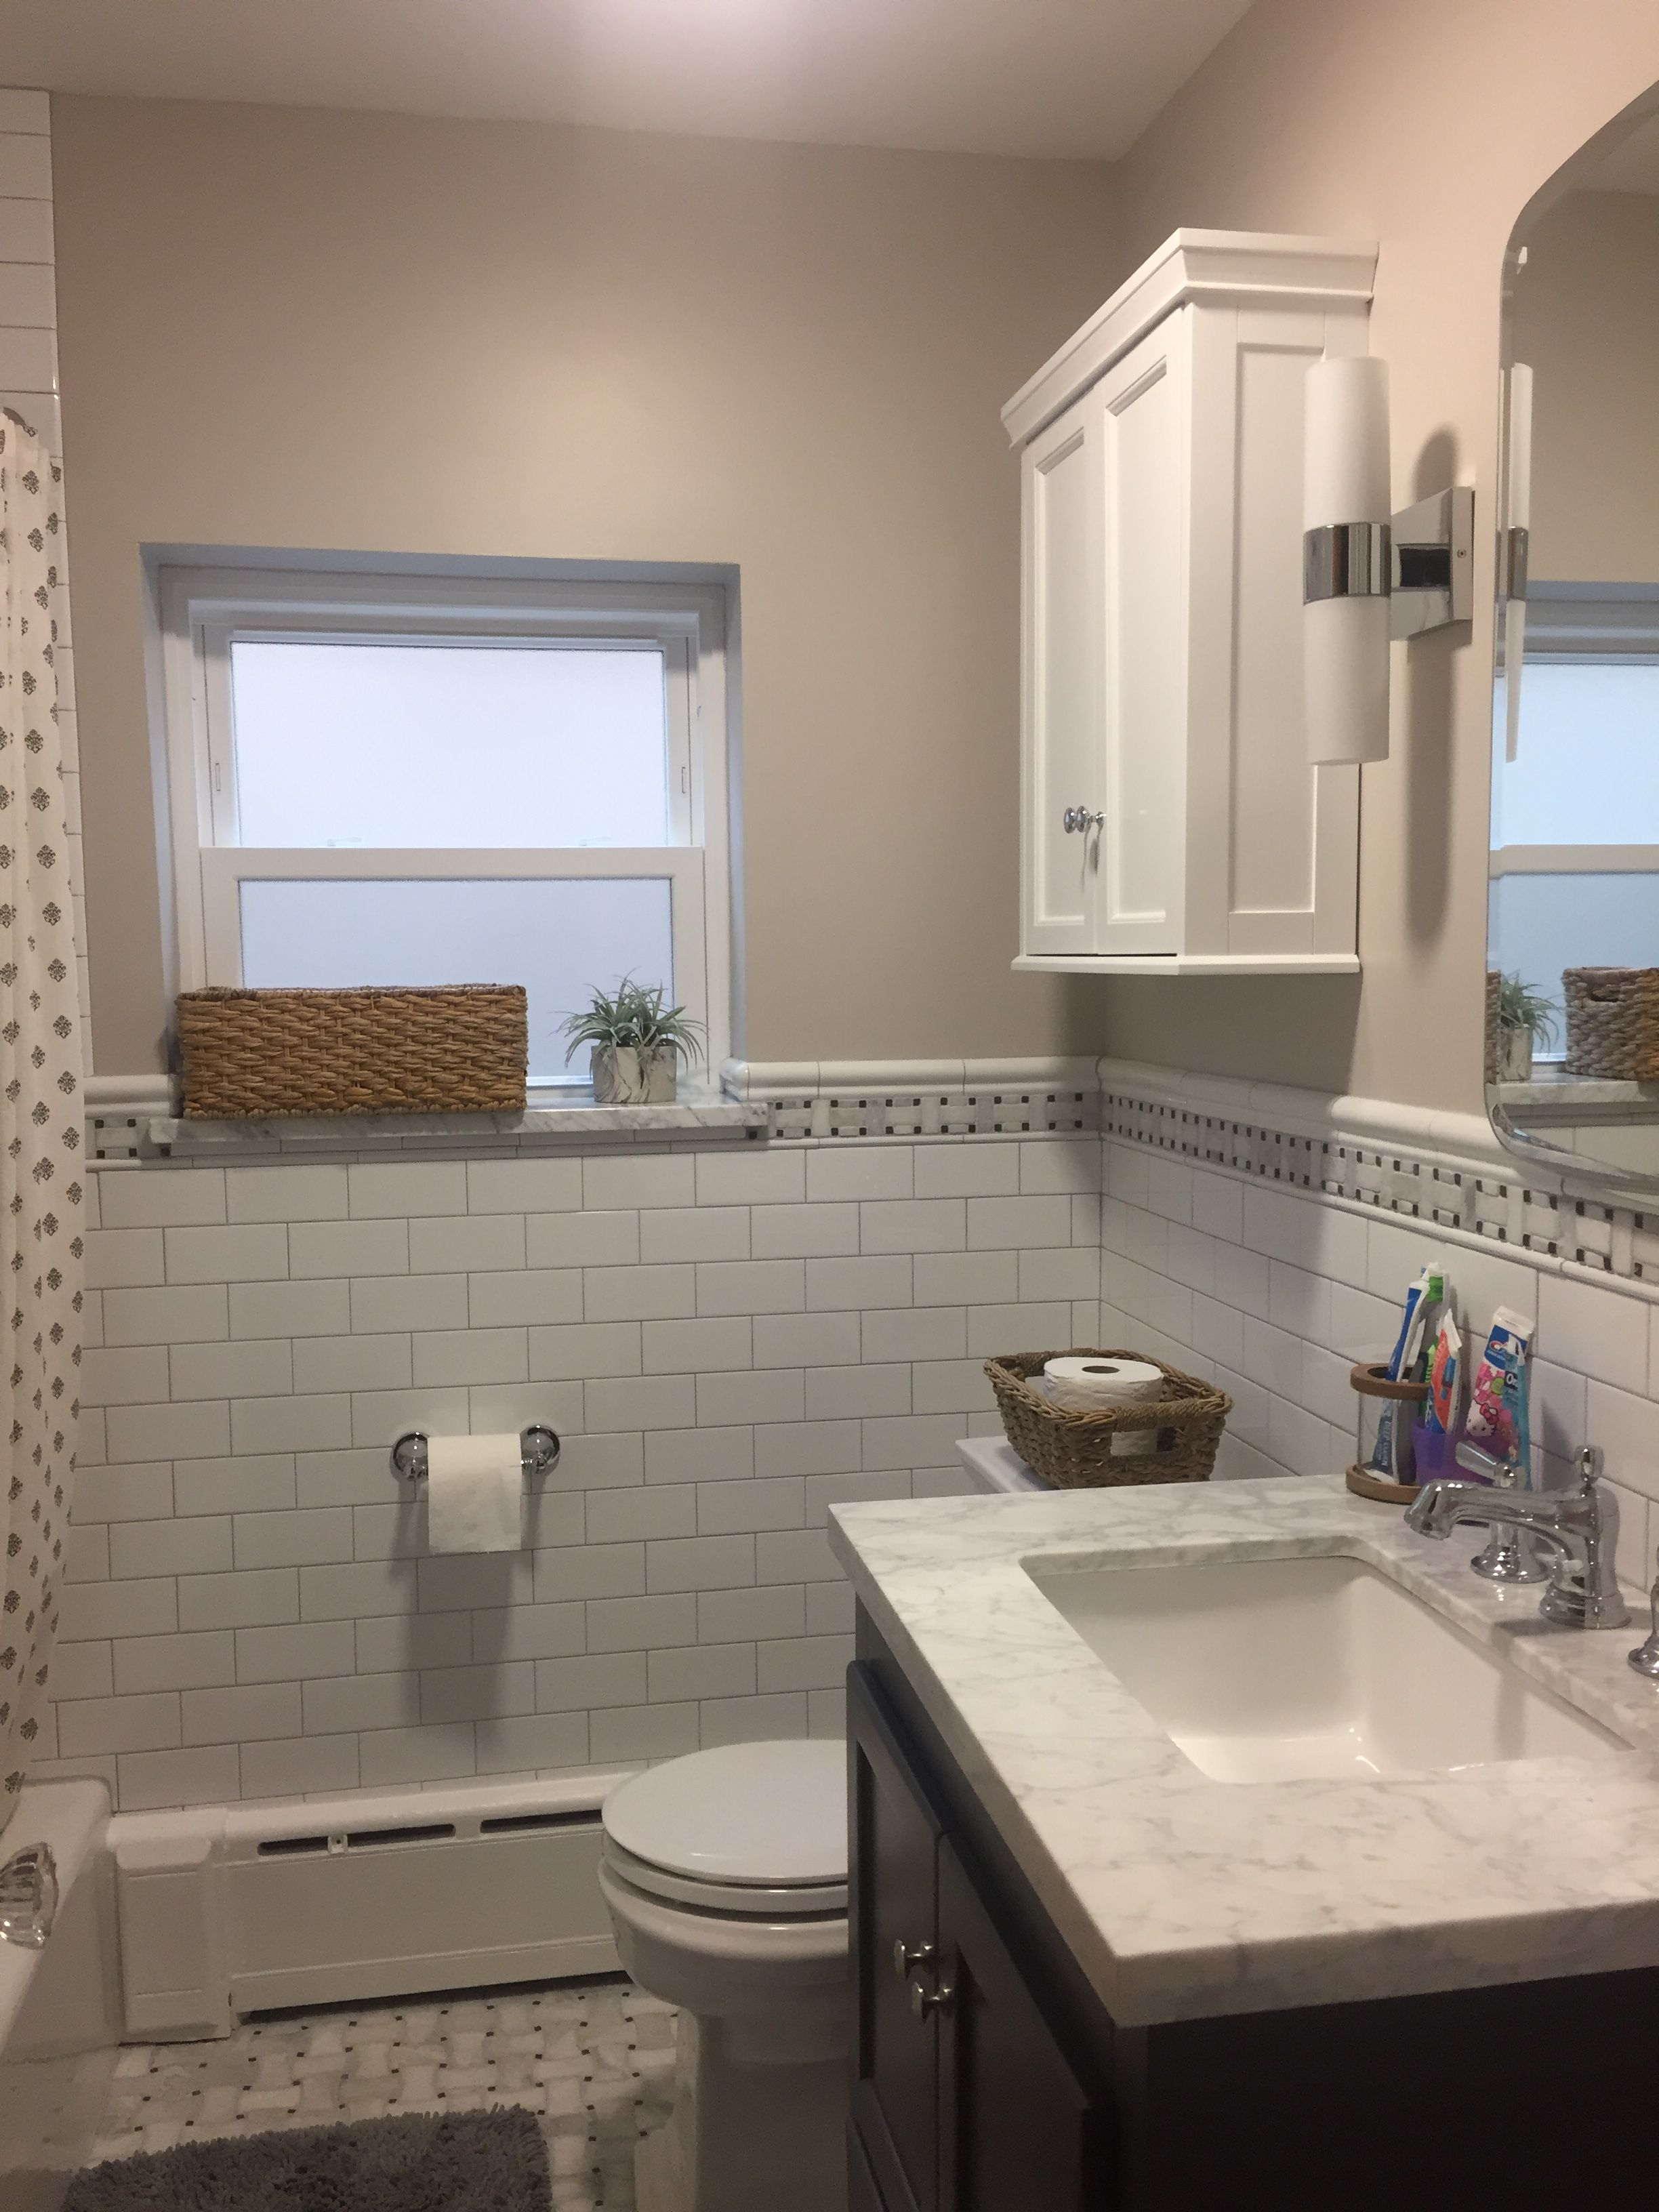 Our Bathroom Remodel In Our Chicago Bungalow Bungalov Bathrooms